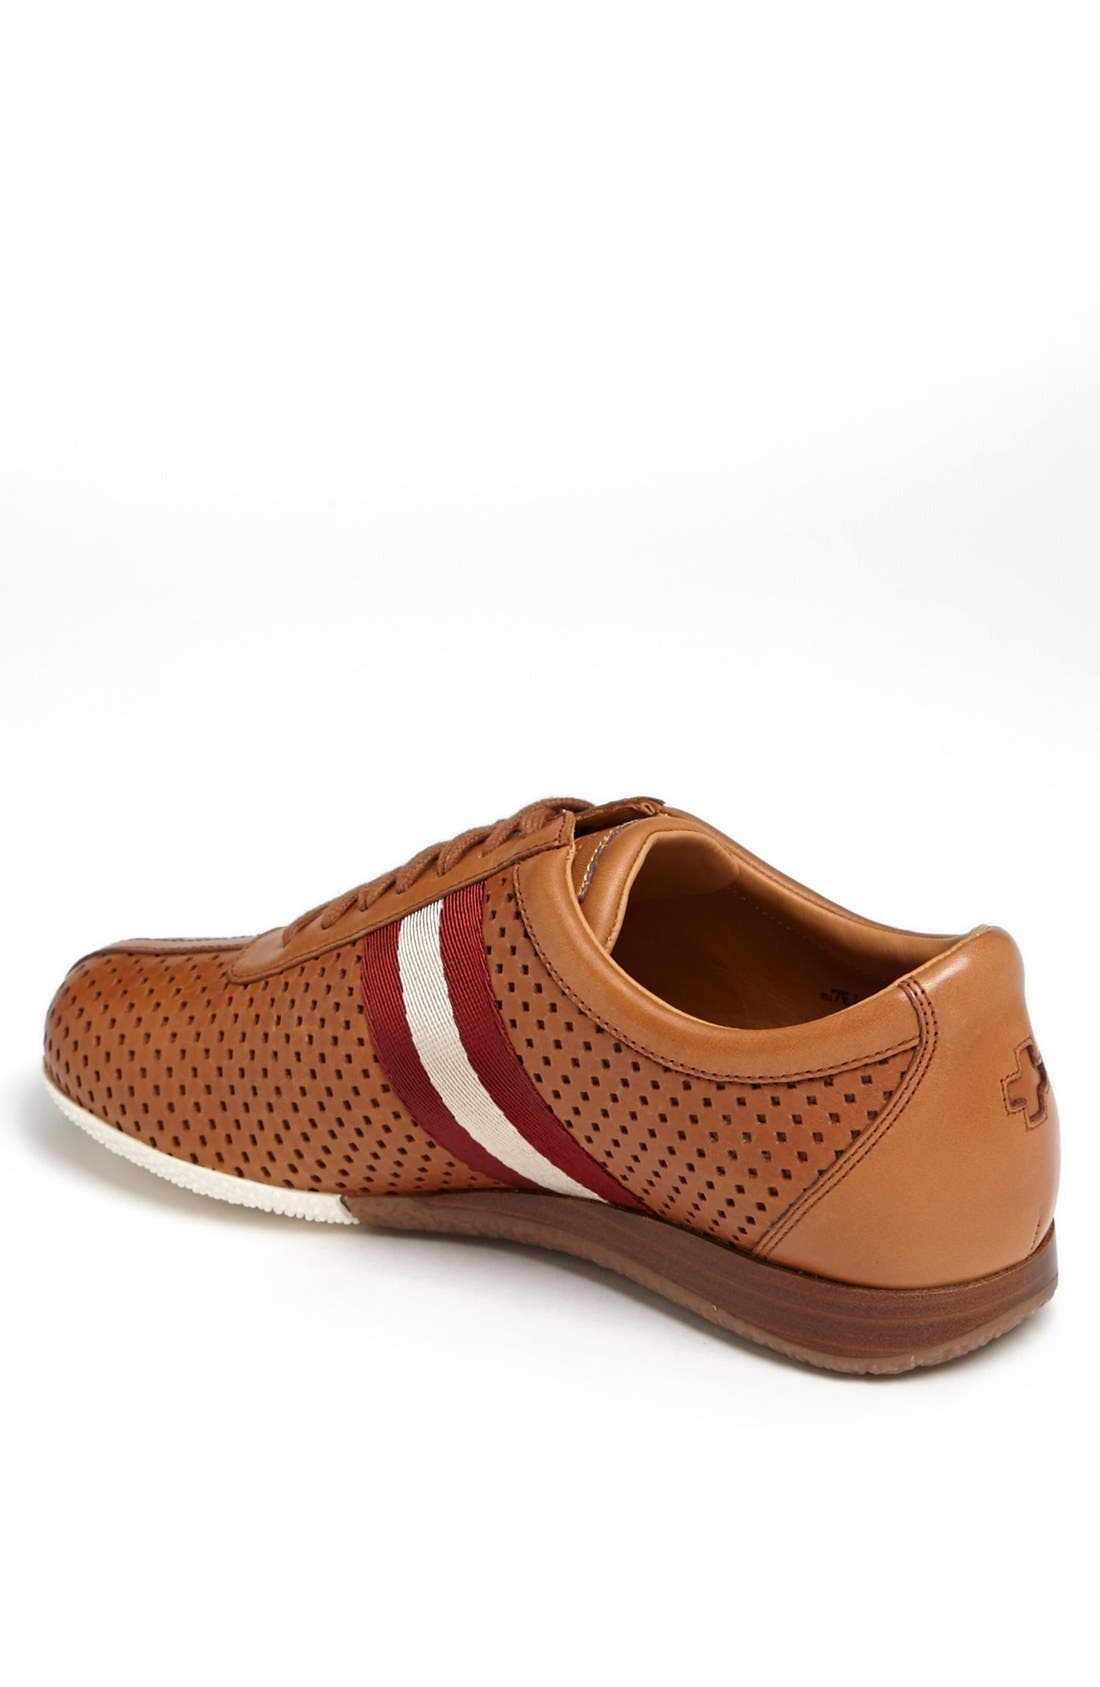 Alternate Image 2  - Bally 'Freenew' Perforated Leather Sneaker